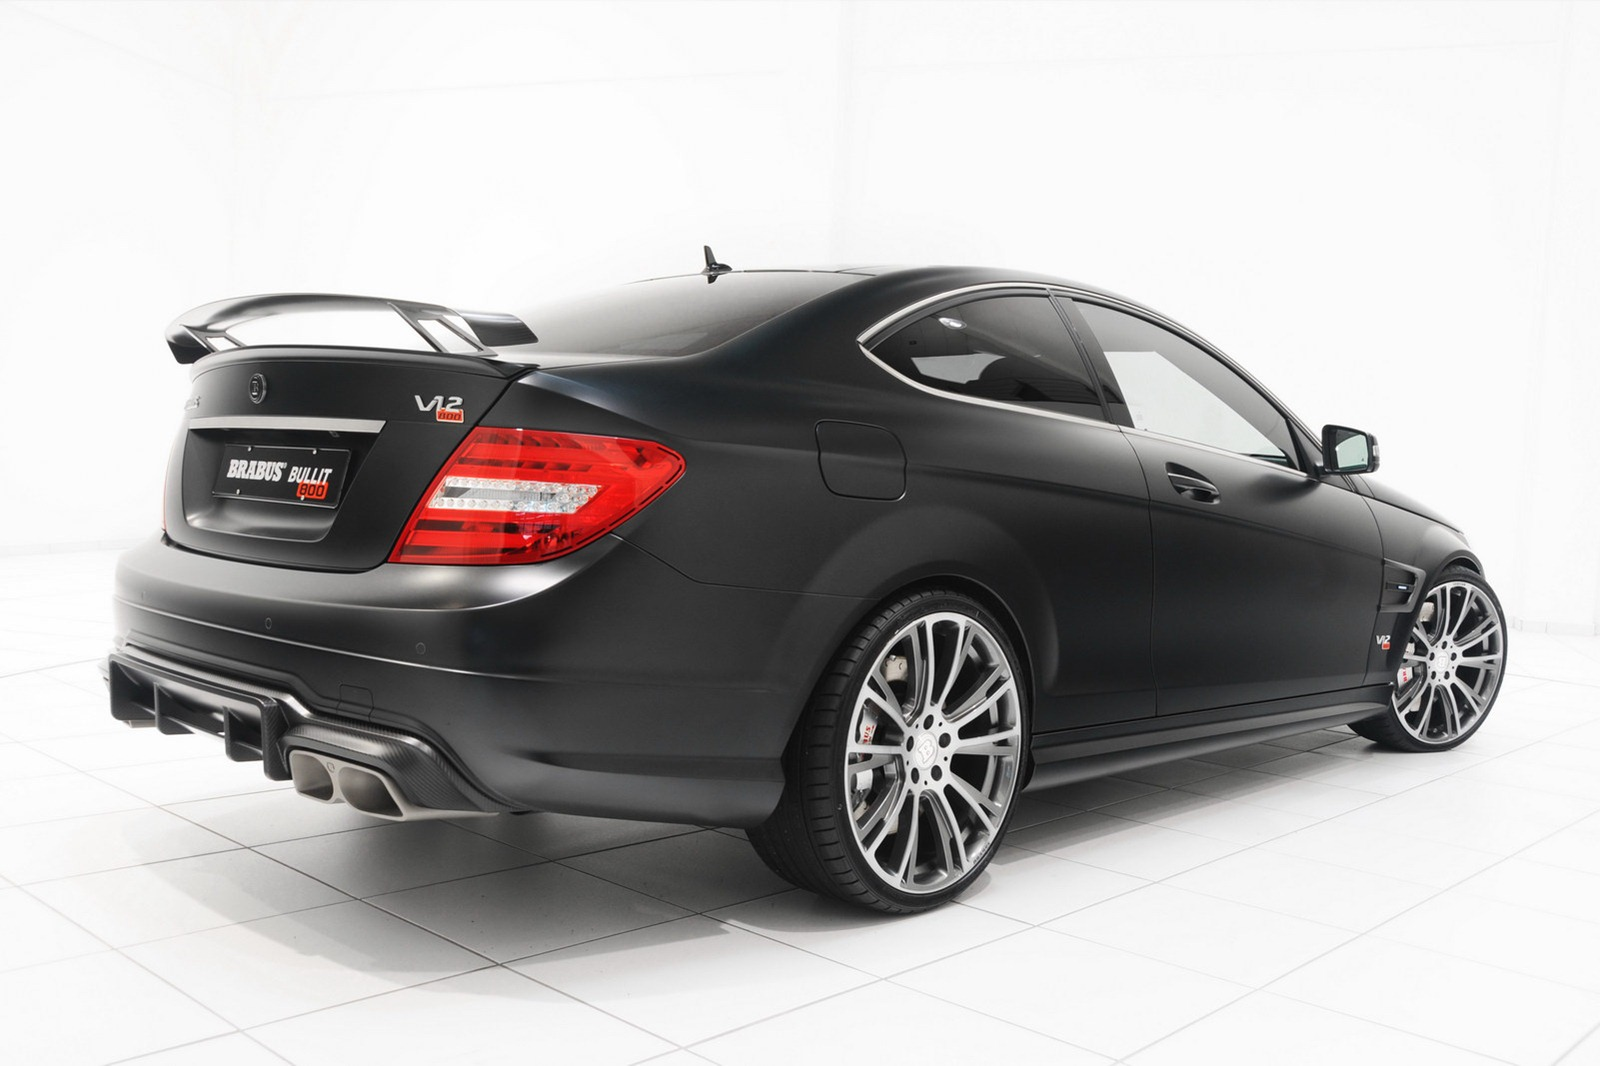 Brabus Bullit Coupe 800 rear quarter